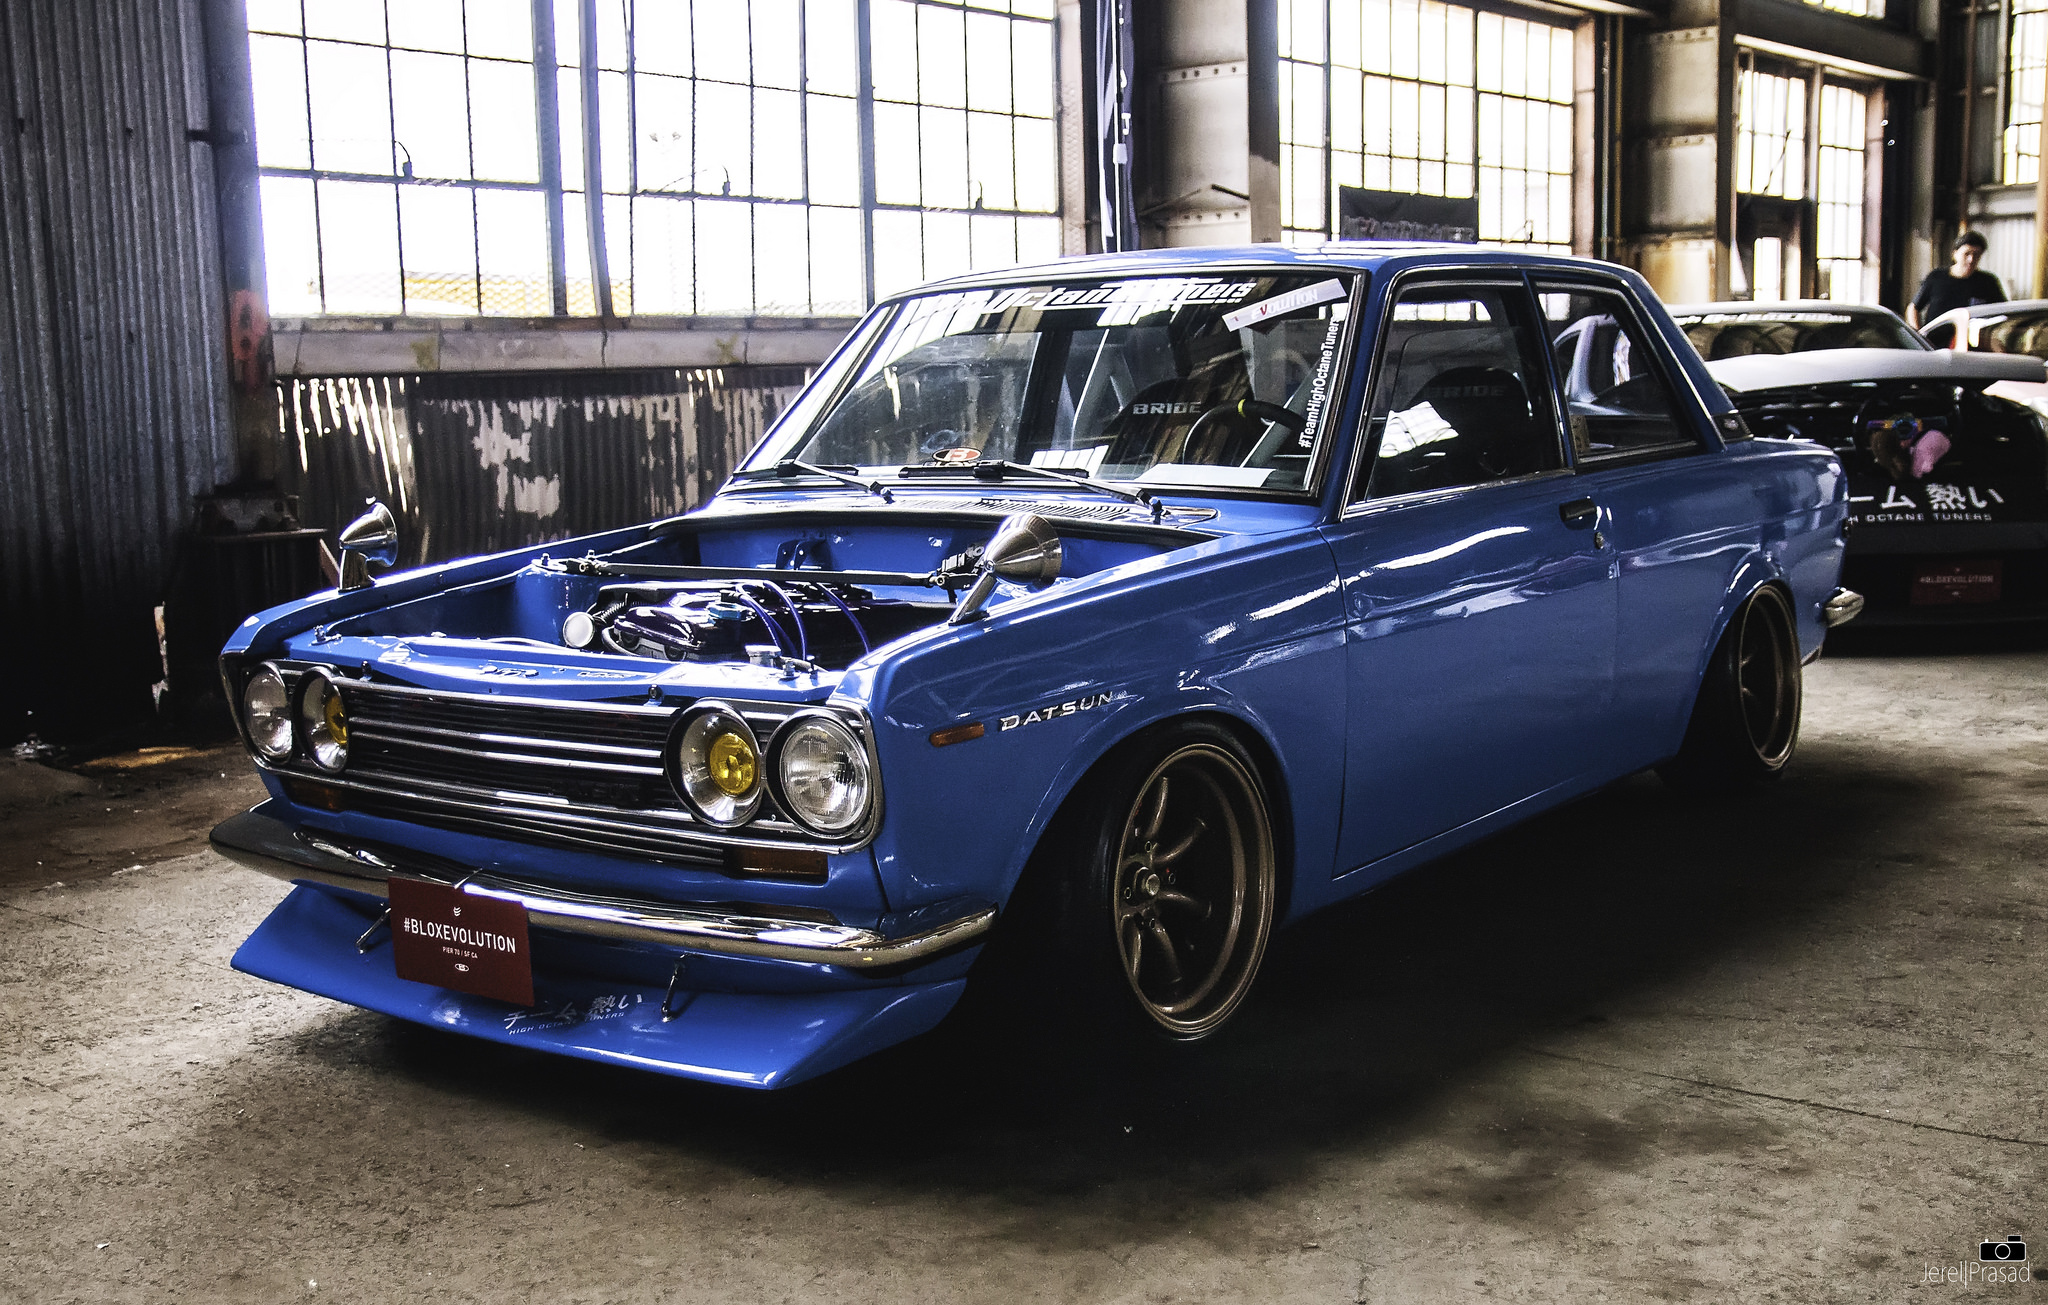 Slammed Car Wallpaper Datsun 510 Looking Good Stancenation Form Gt Function